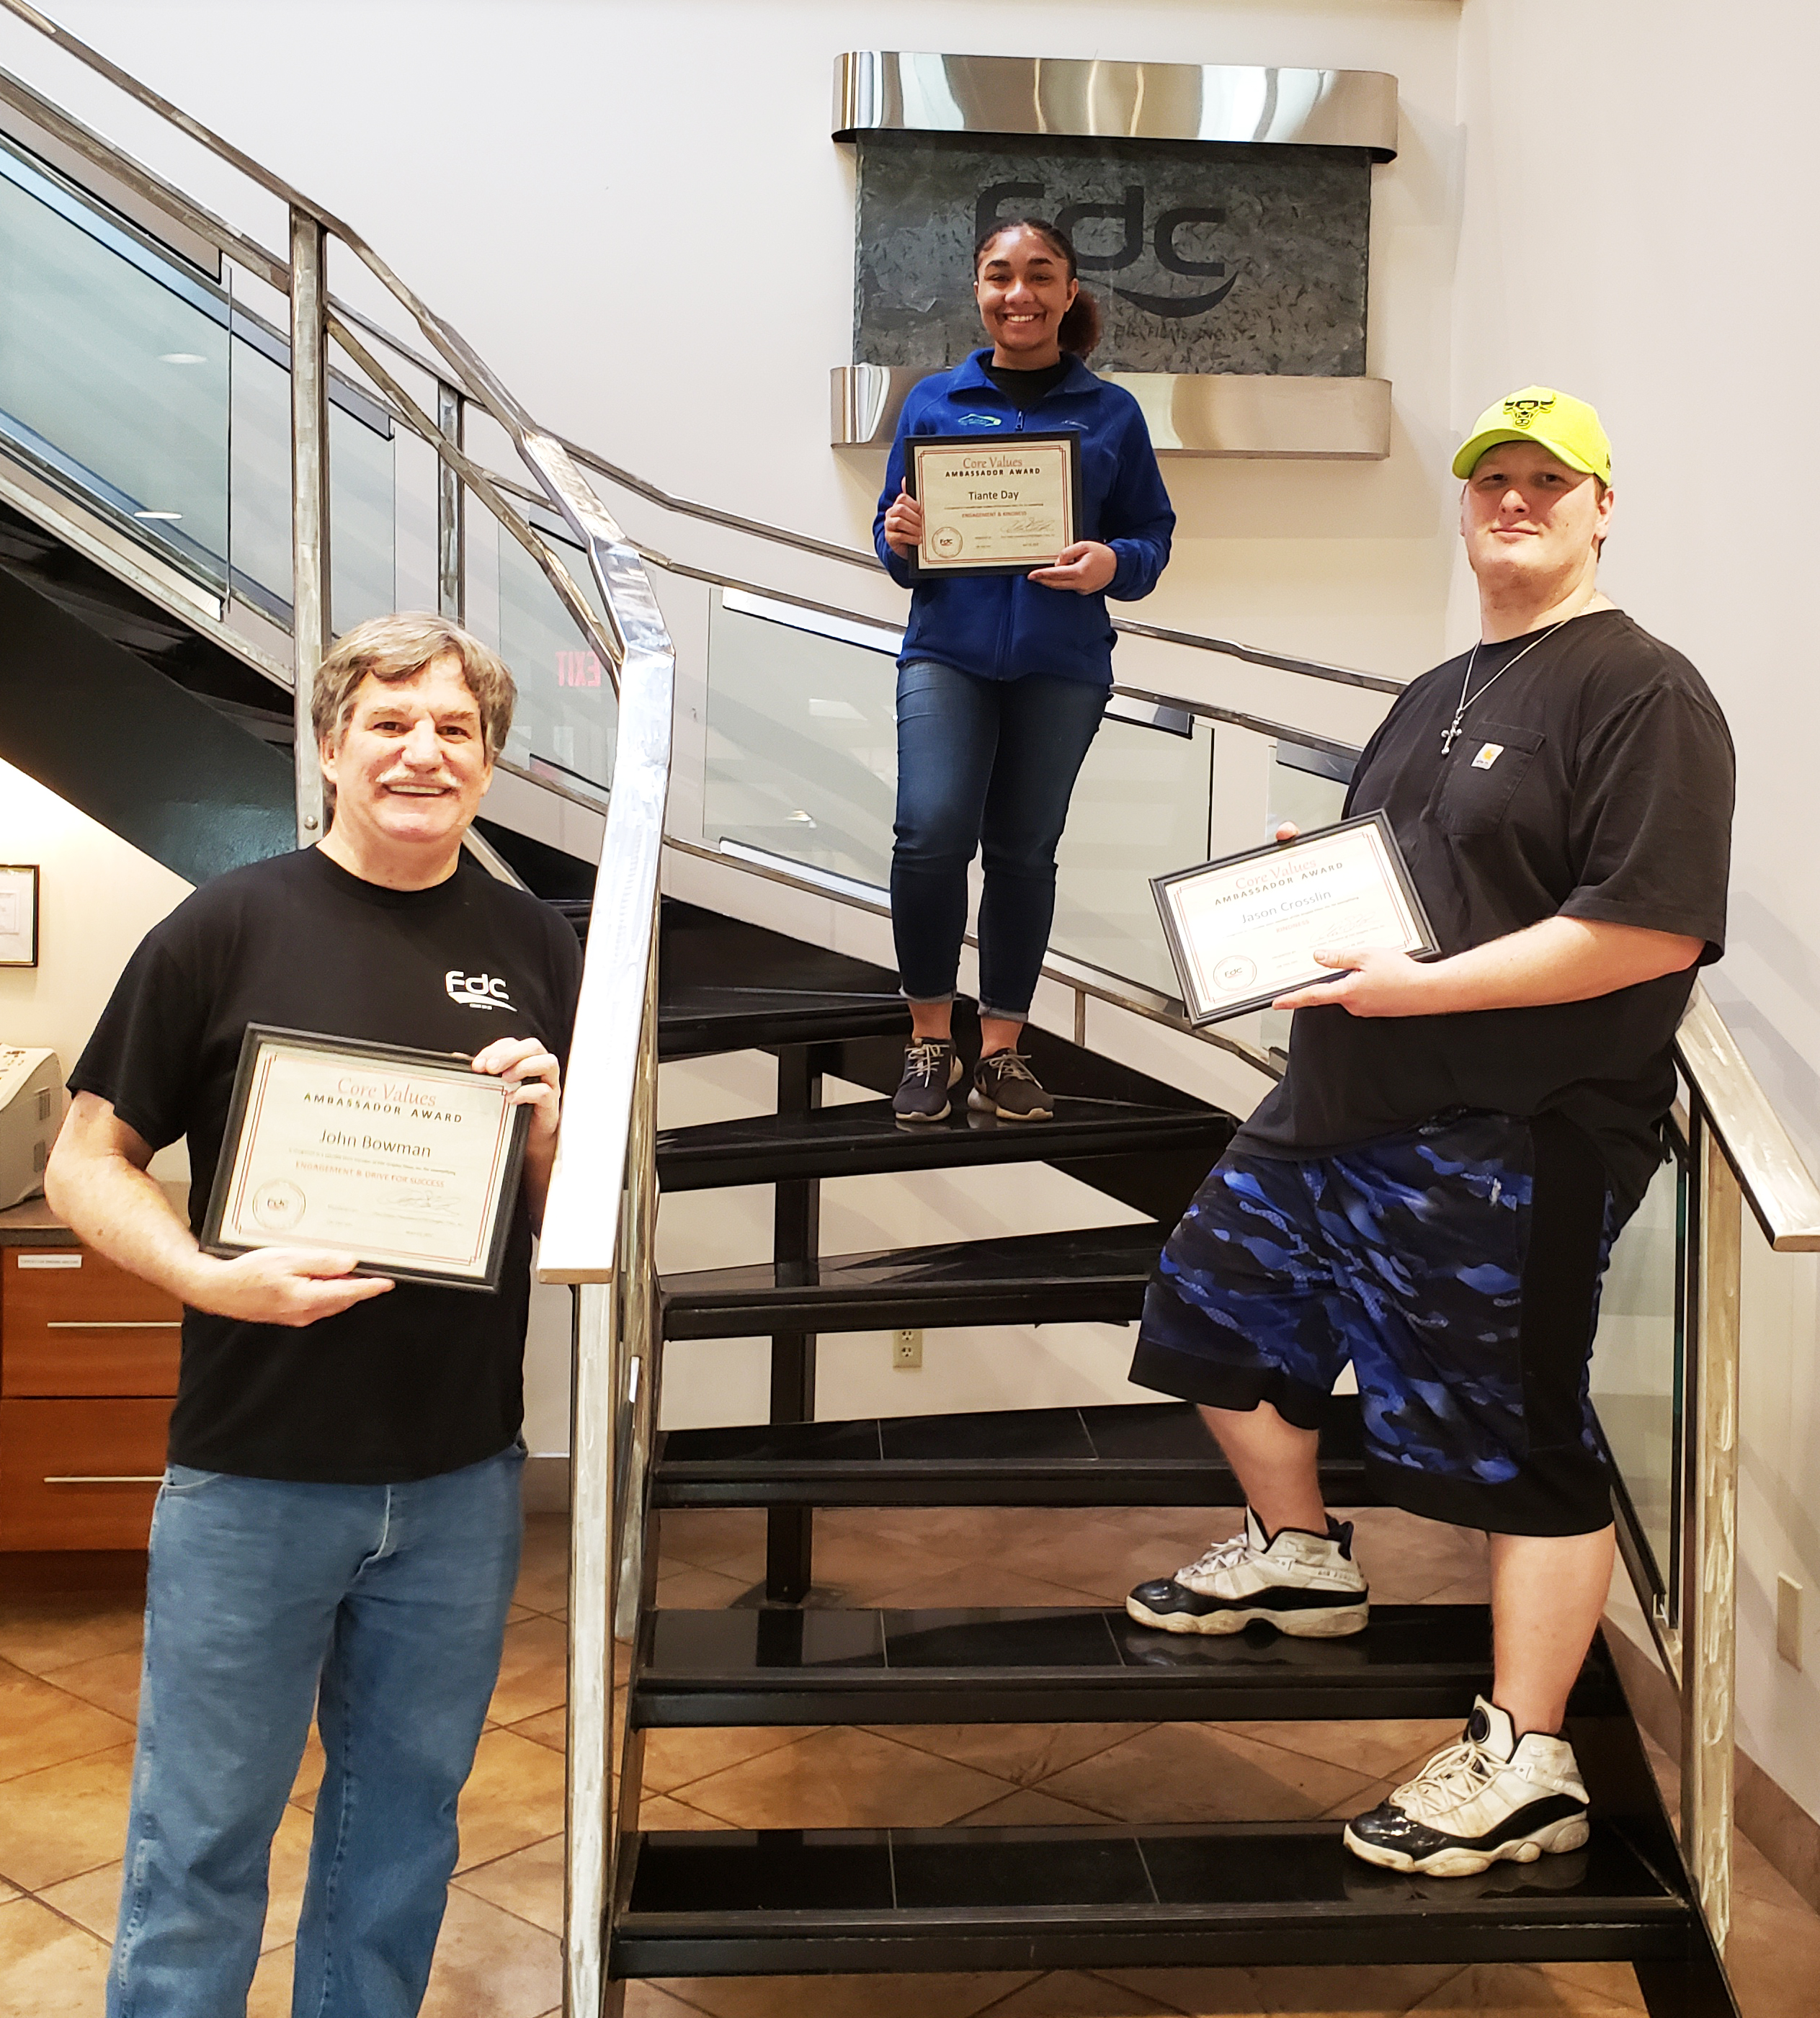 FDC recognizes employees who exemplify core values.